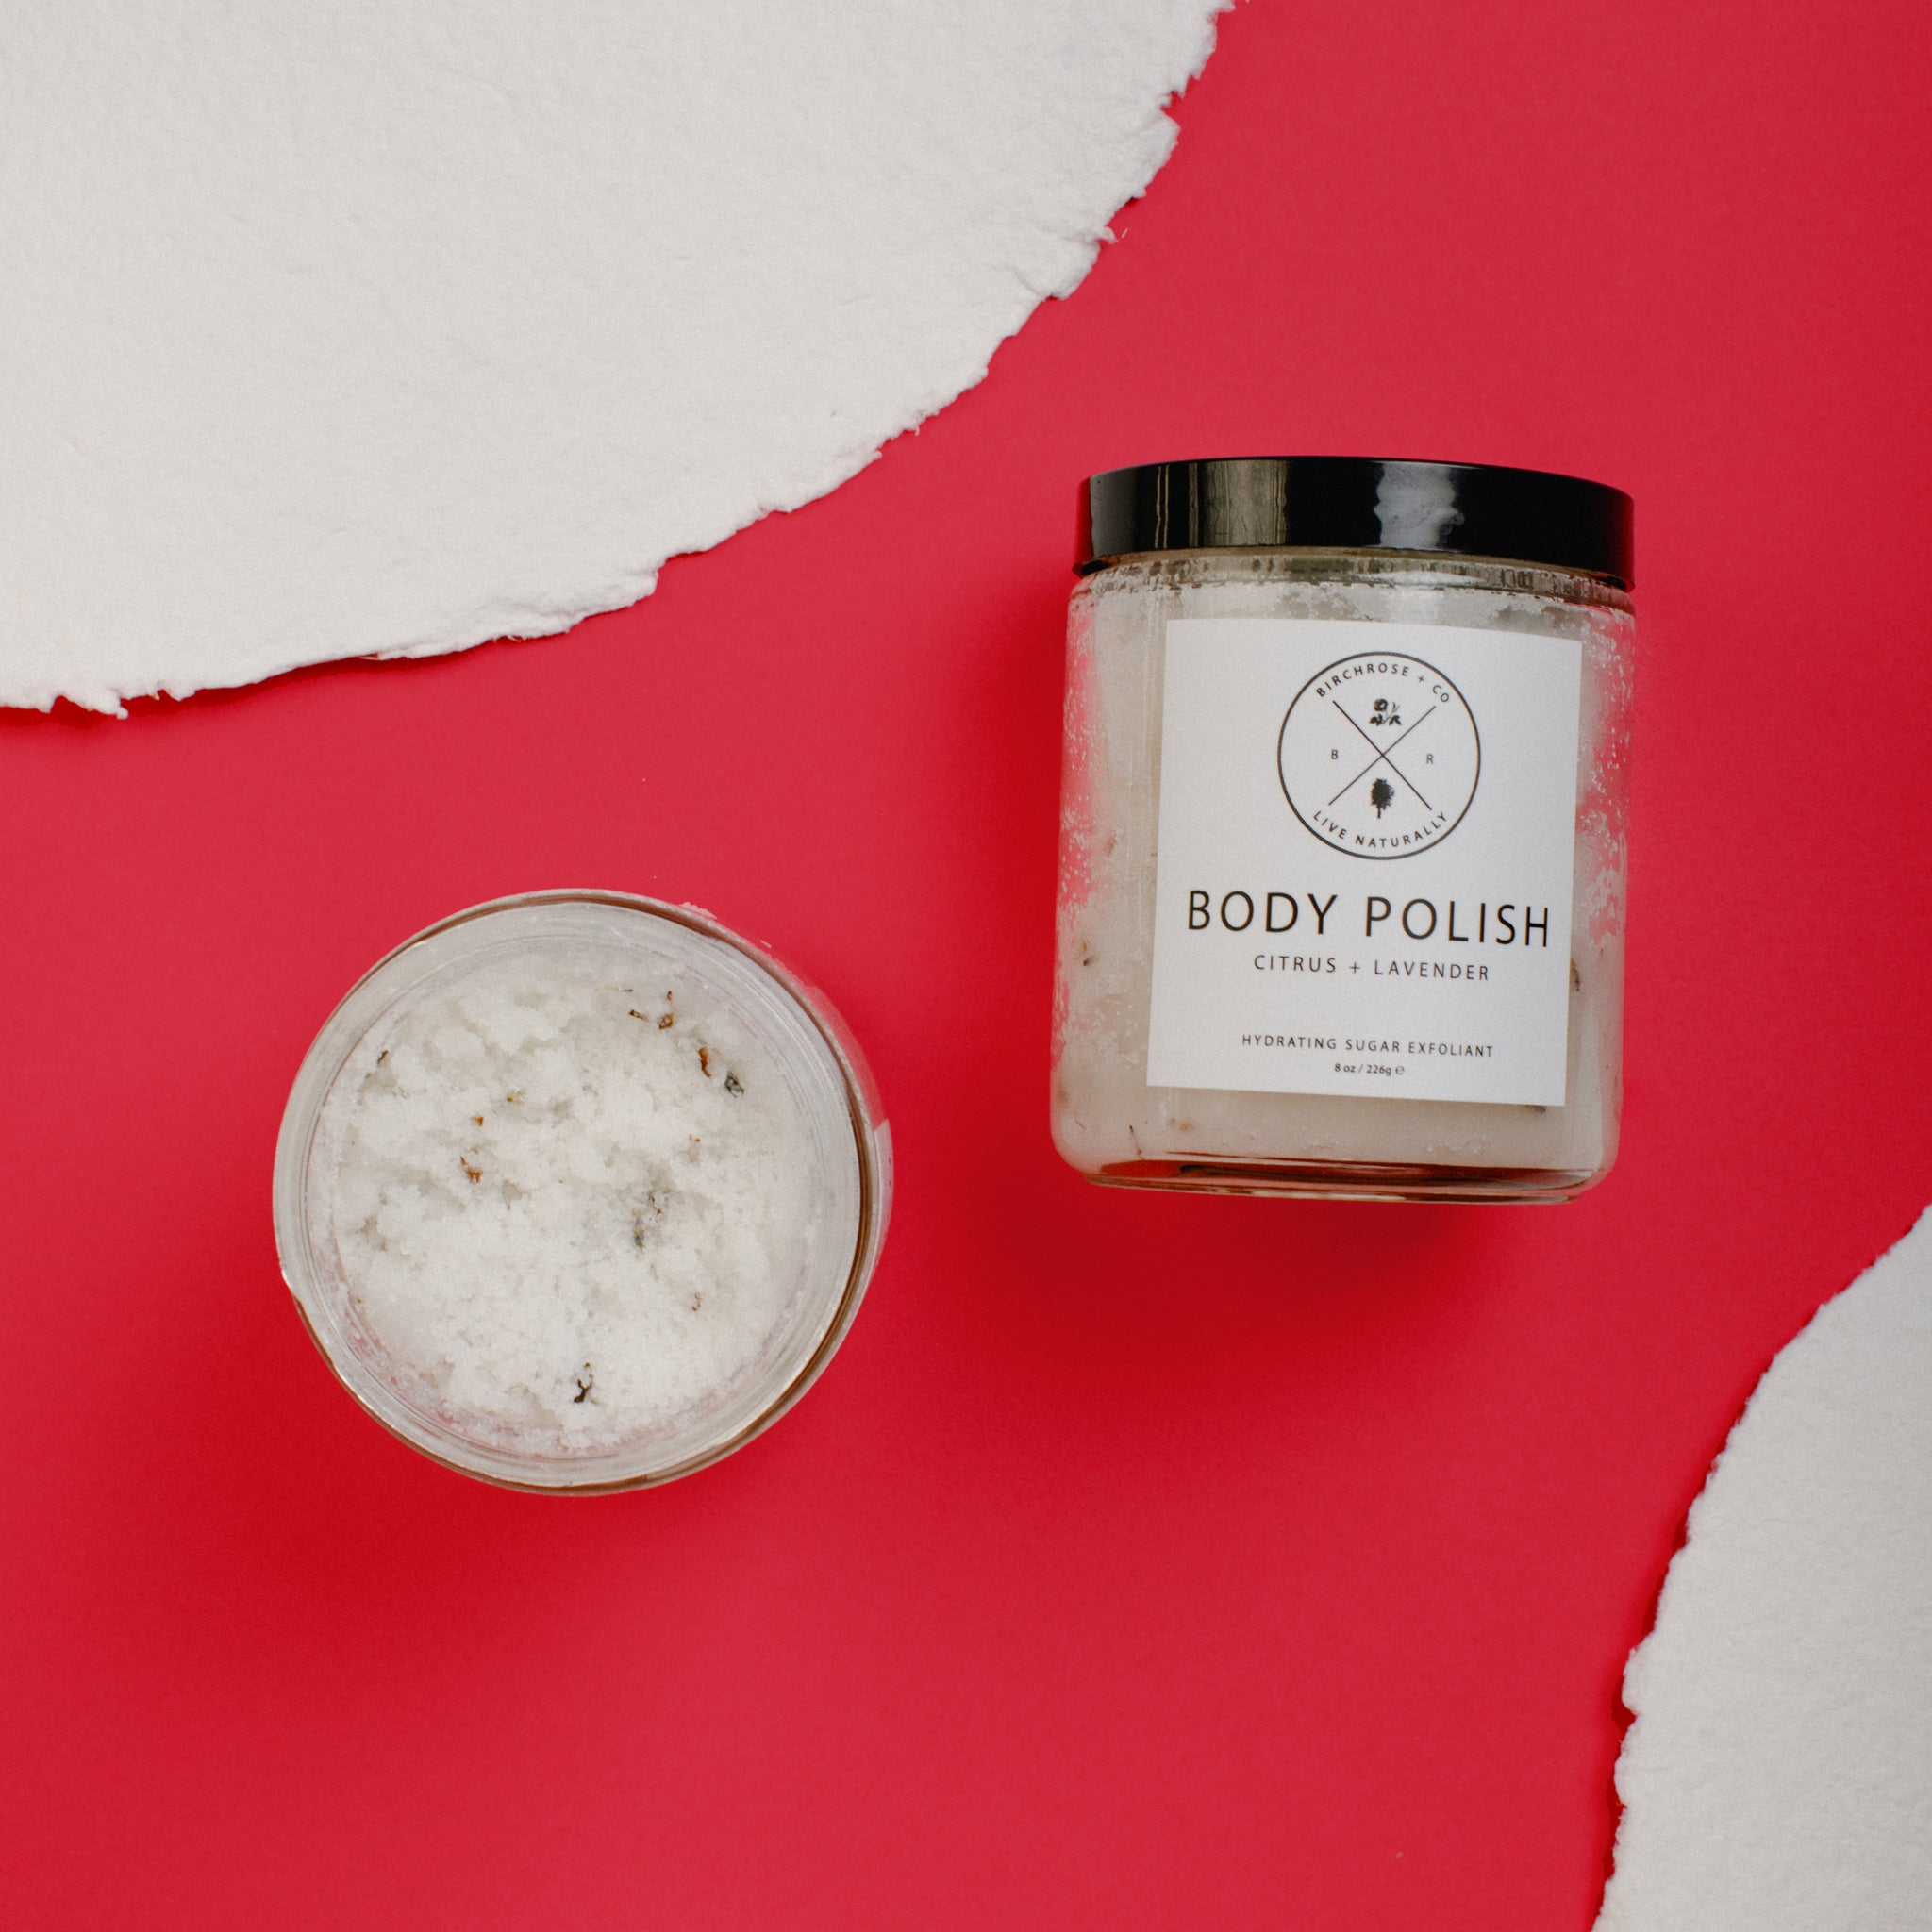 Body Polish - Citrus + Lavender